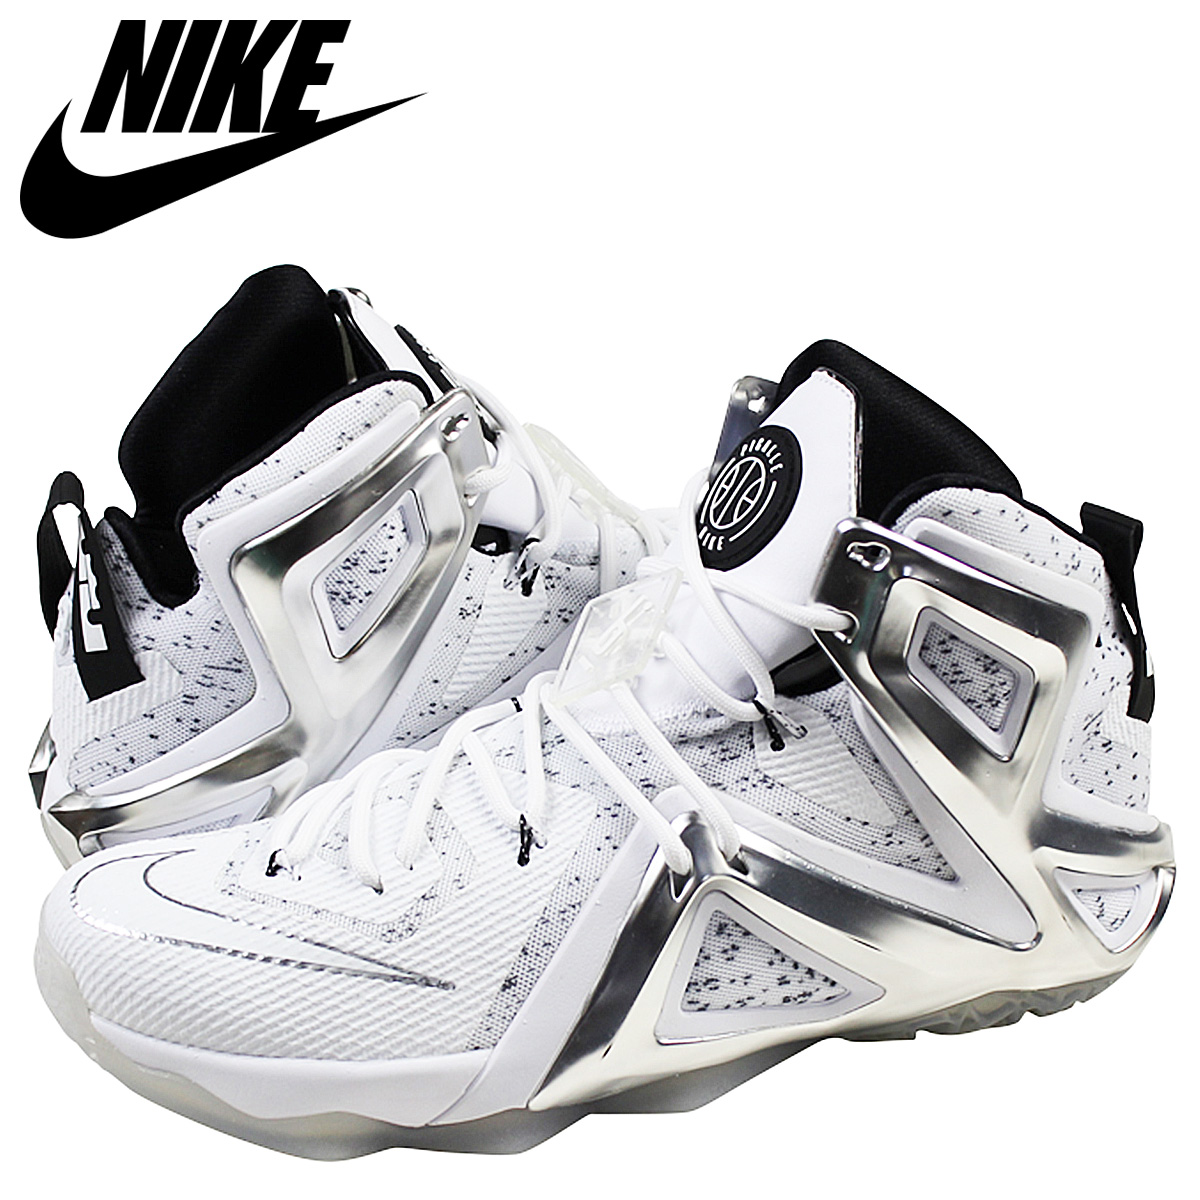 check out 86224 8e0cd ... get sold out nike nike lebron sneakers labpigalle lebron xii elite sp  lab pigalle lebron 12